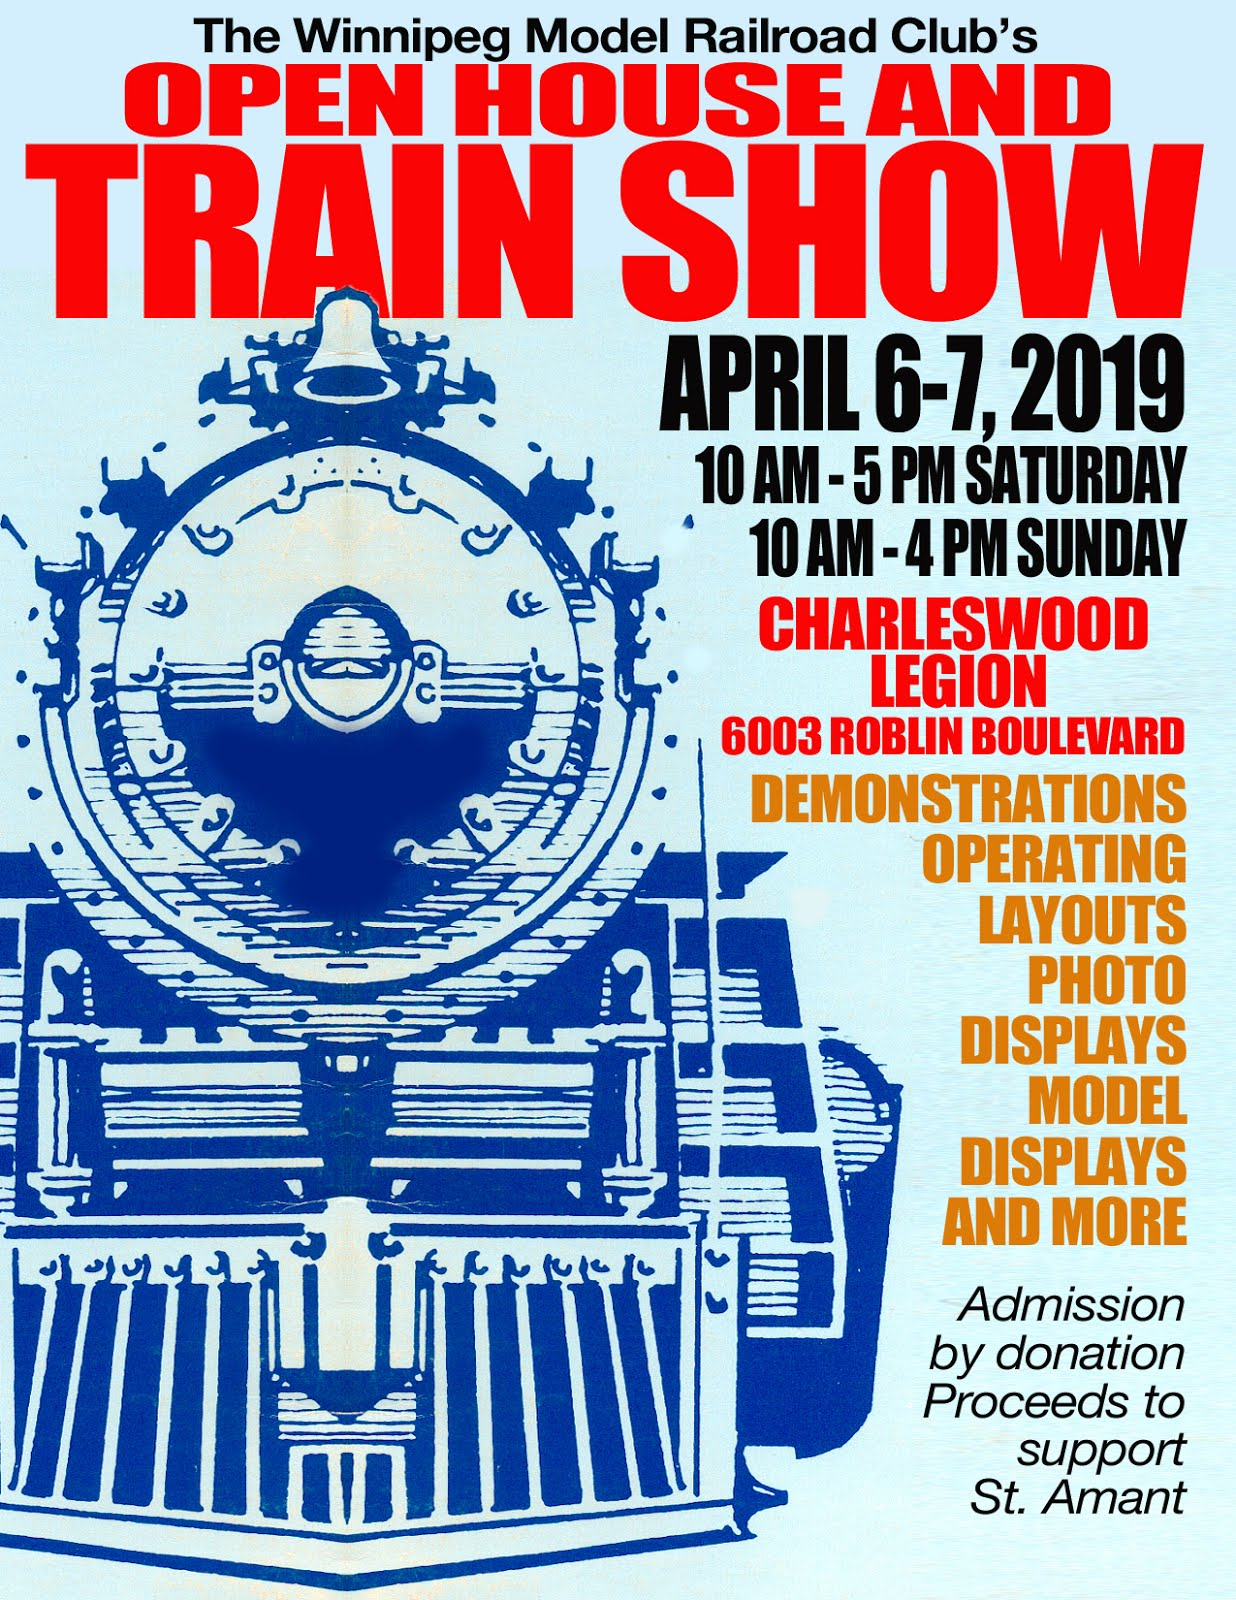 COME TO OUR TRAIN SHOW IN APRIL!